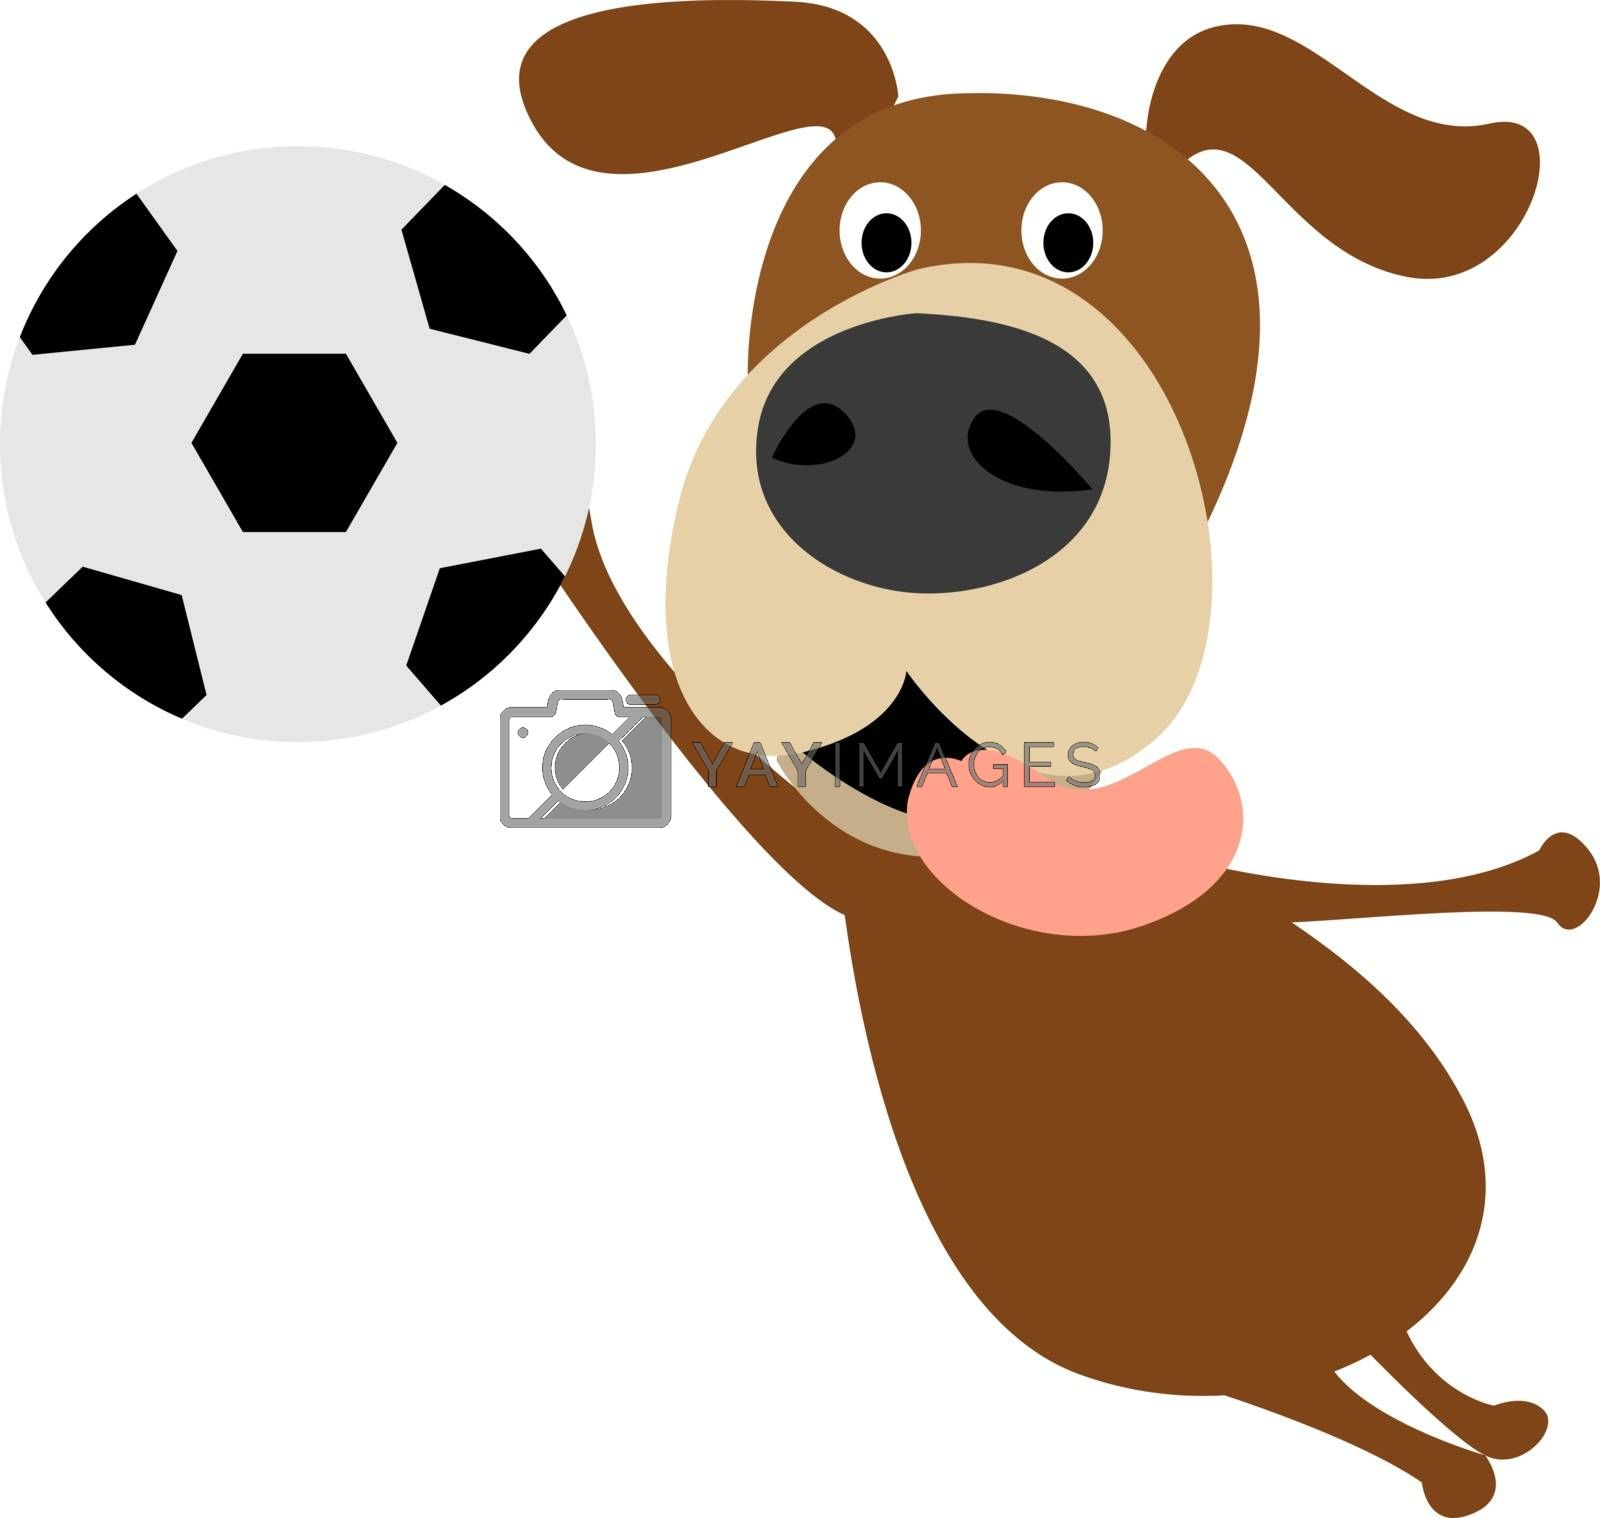 Dog goalkeeper, illustration, vector on white background.